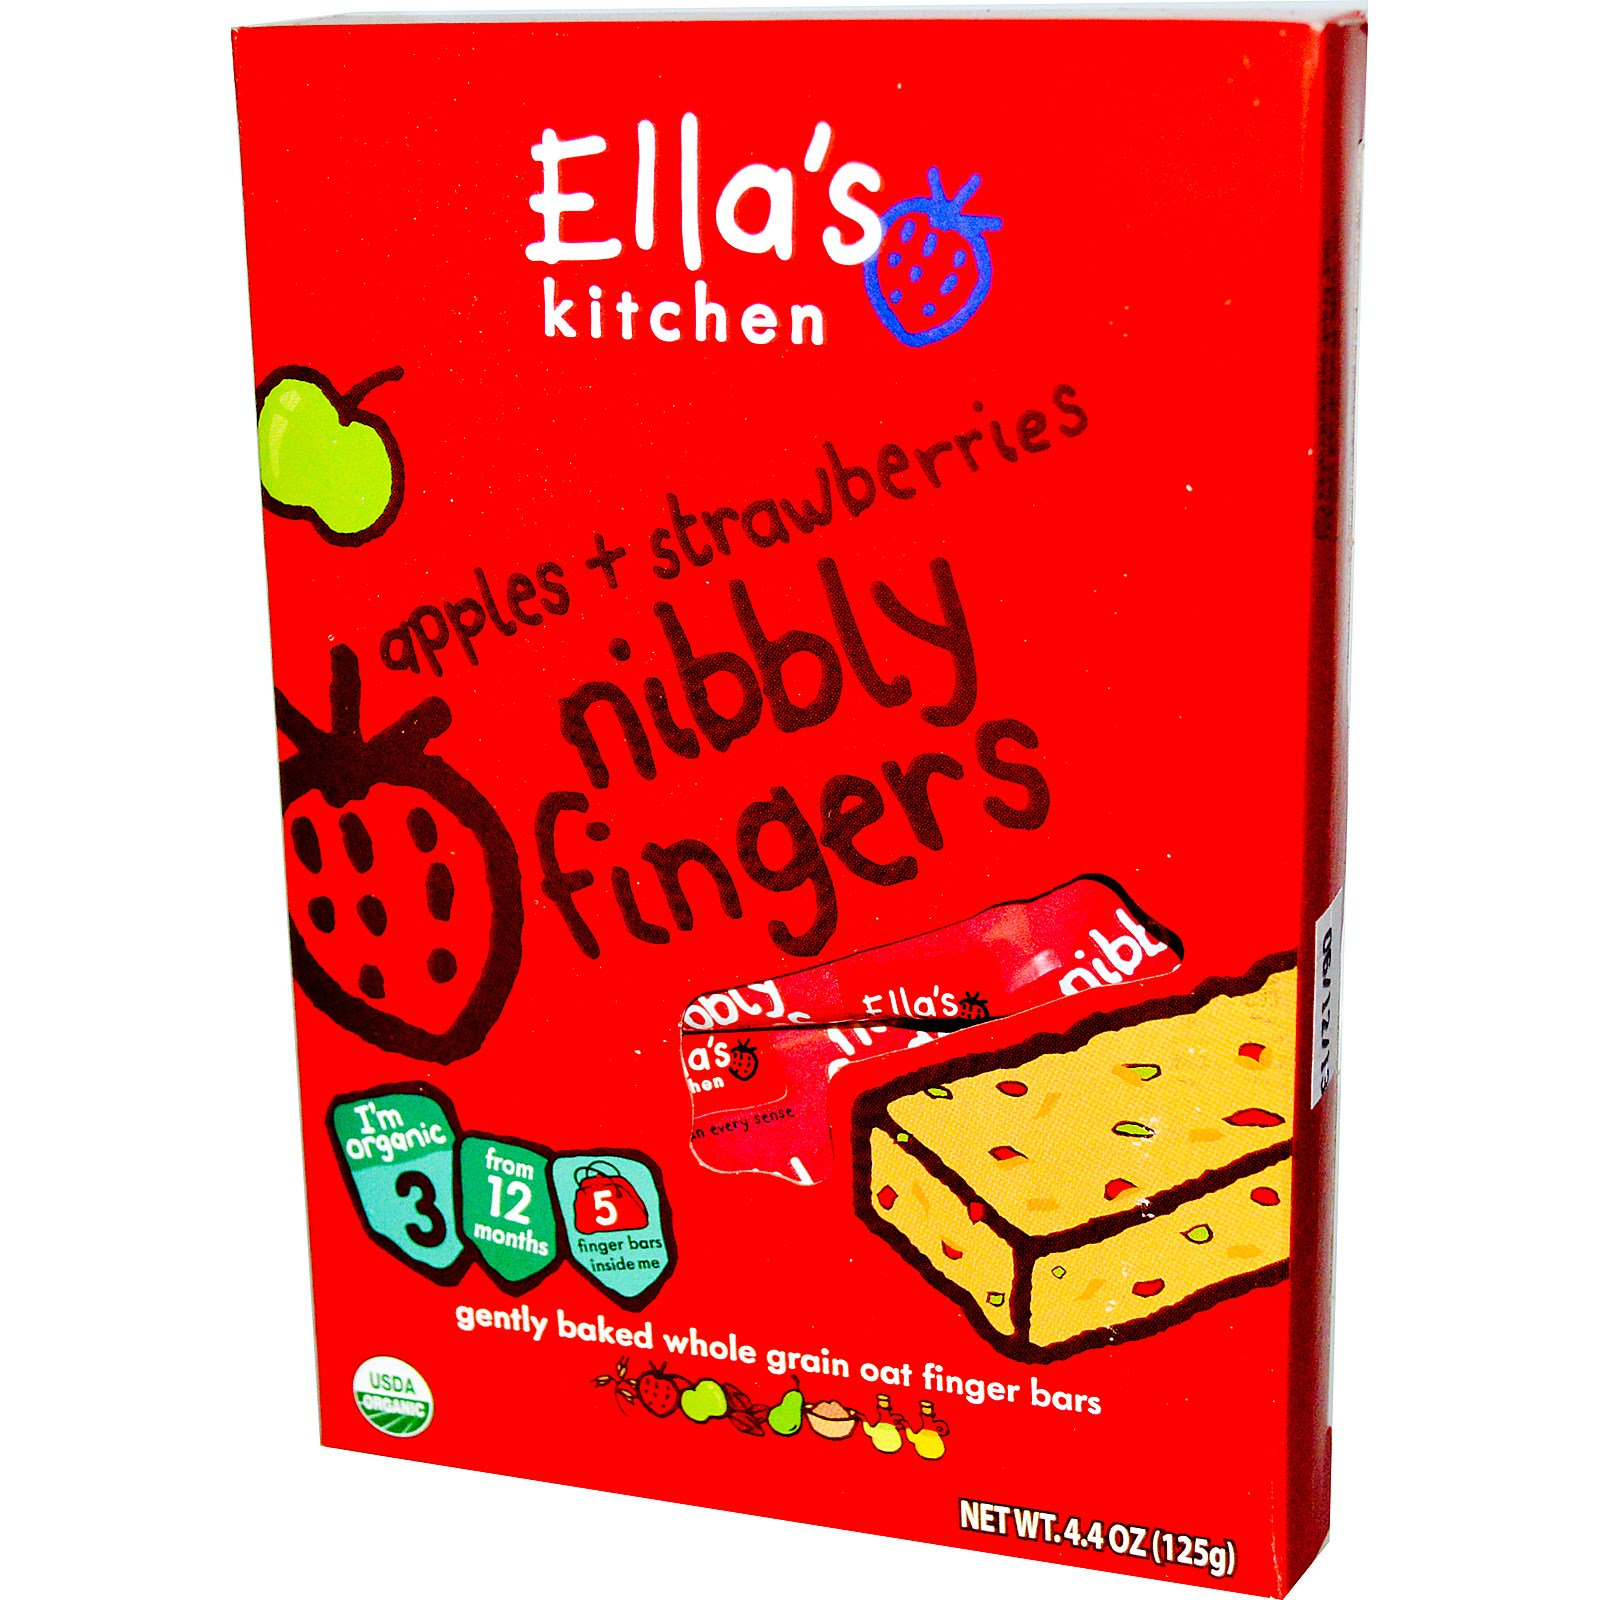 ellas kitchen nibbly fingers apples strawberries 5 bars - Ellas Kitchen